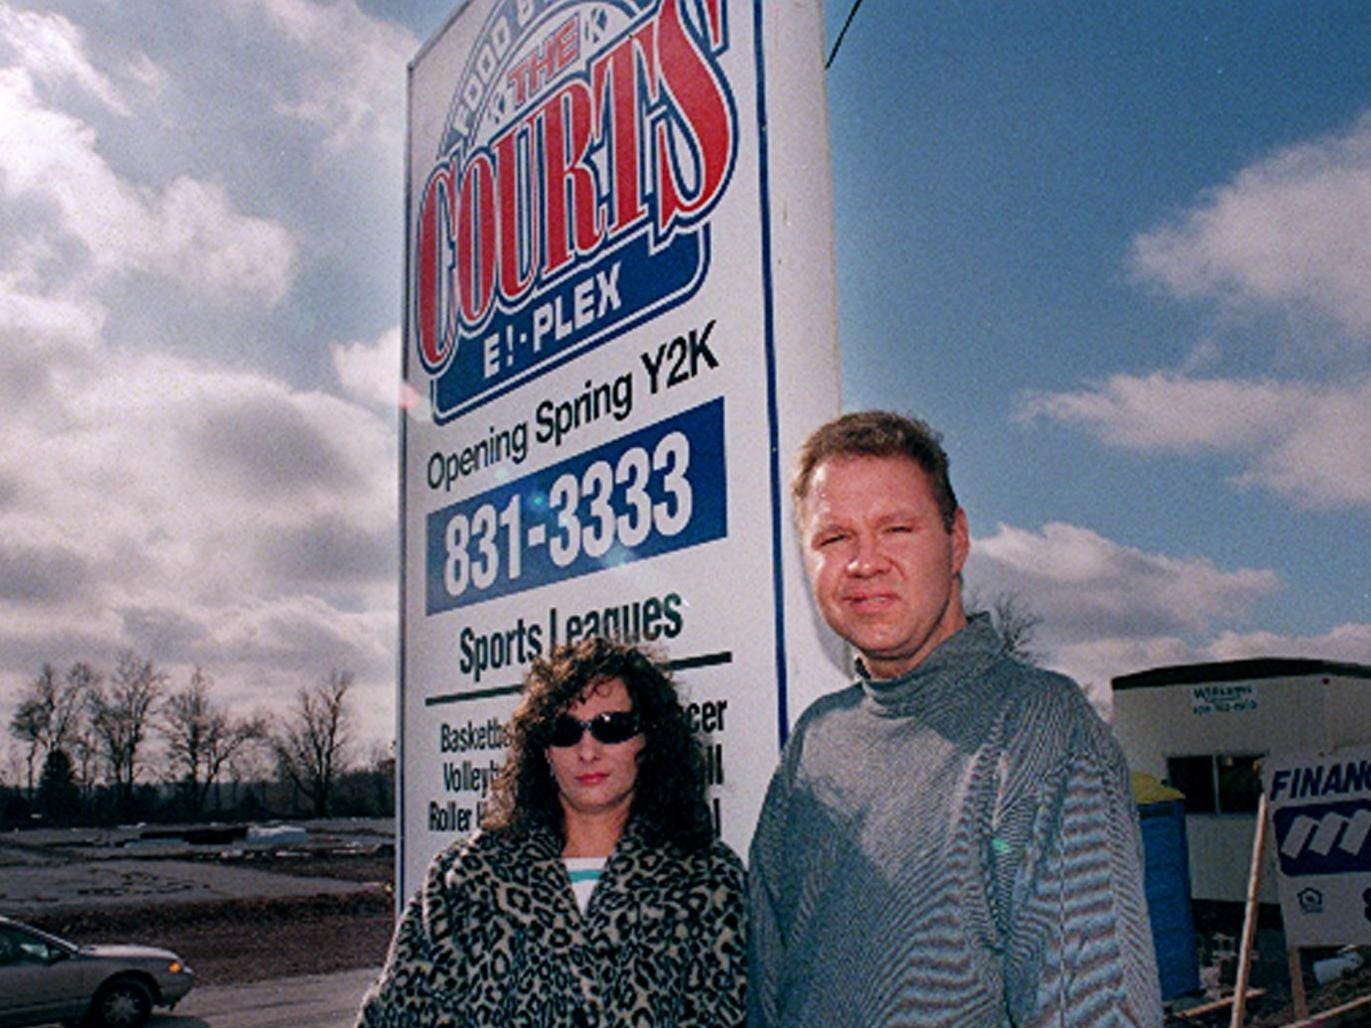 Jack Kramer and his wife Susan are executive directors of the Courts Food & Sports E-Plex.